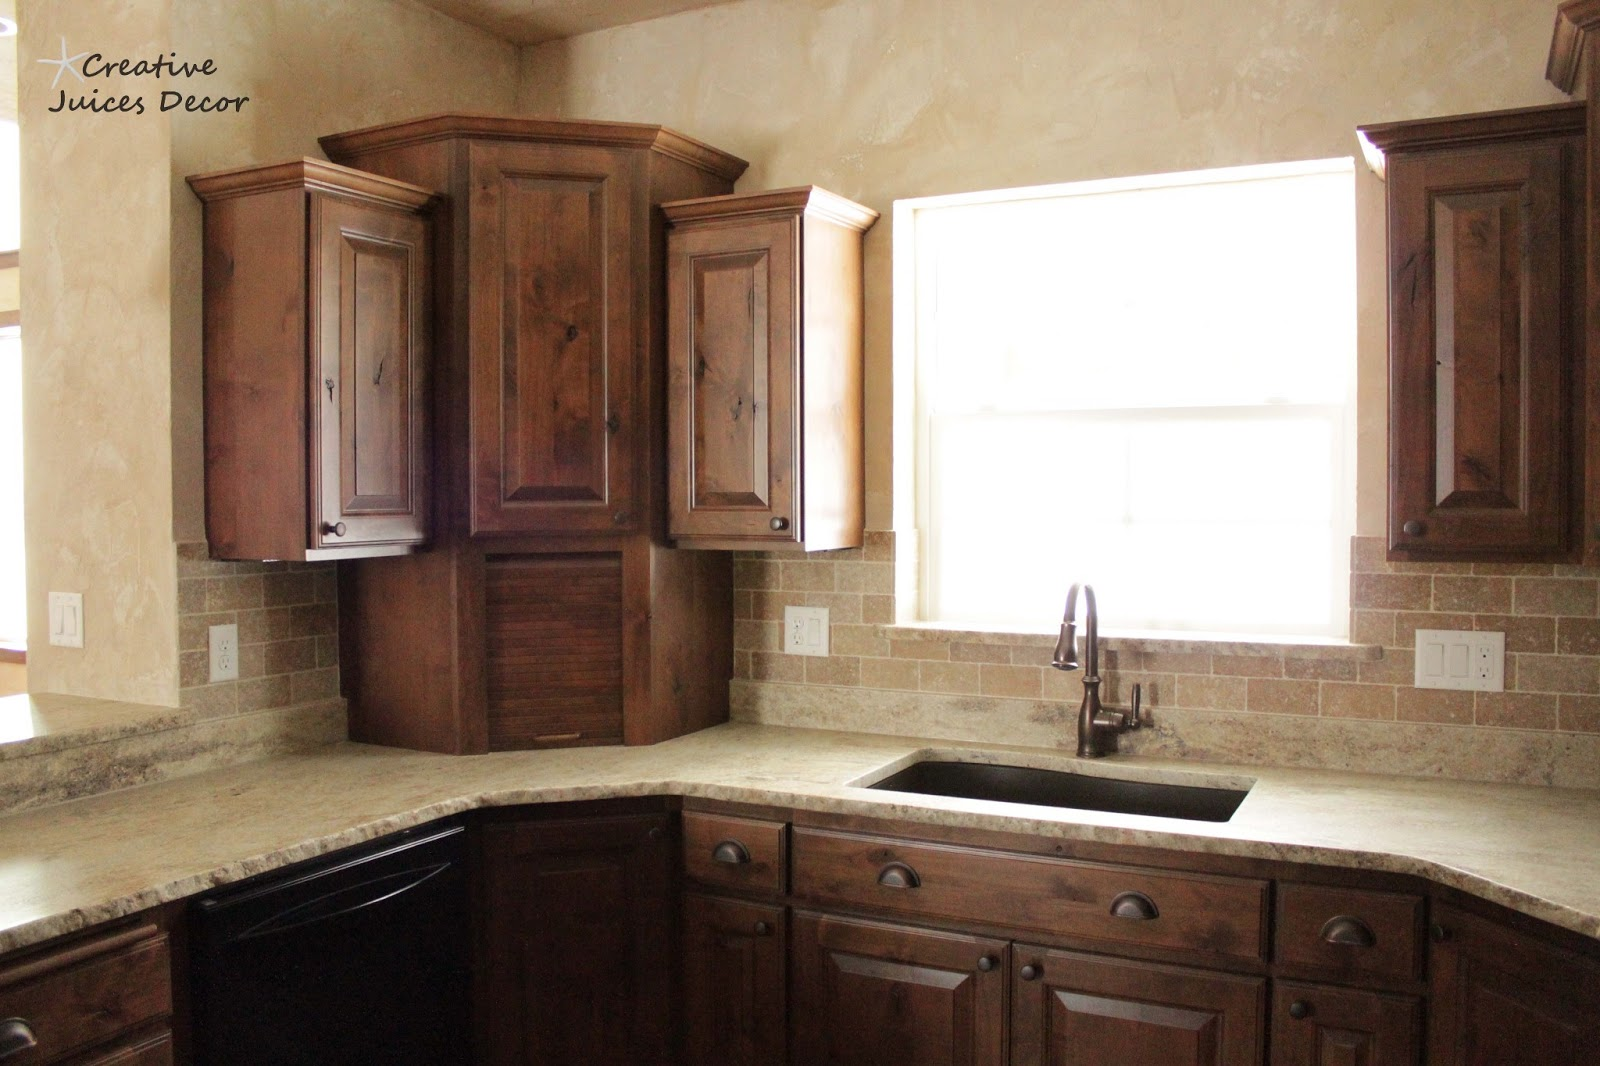 Decor: Kitchen Counter Top Options From A Homeowner's Experience